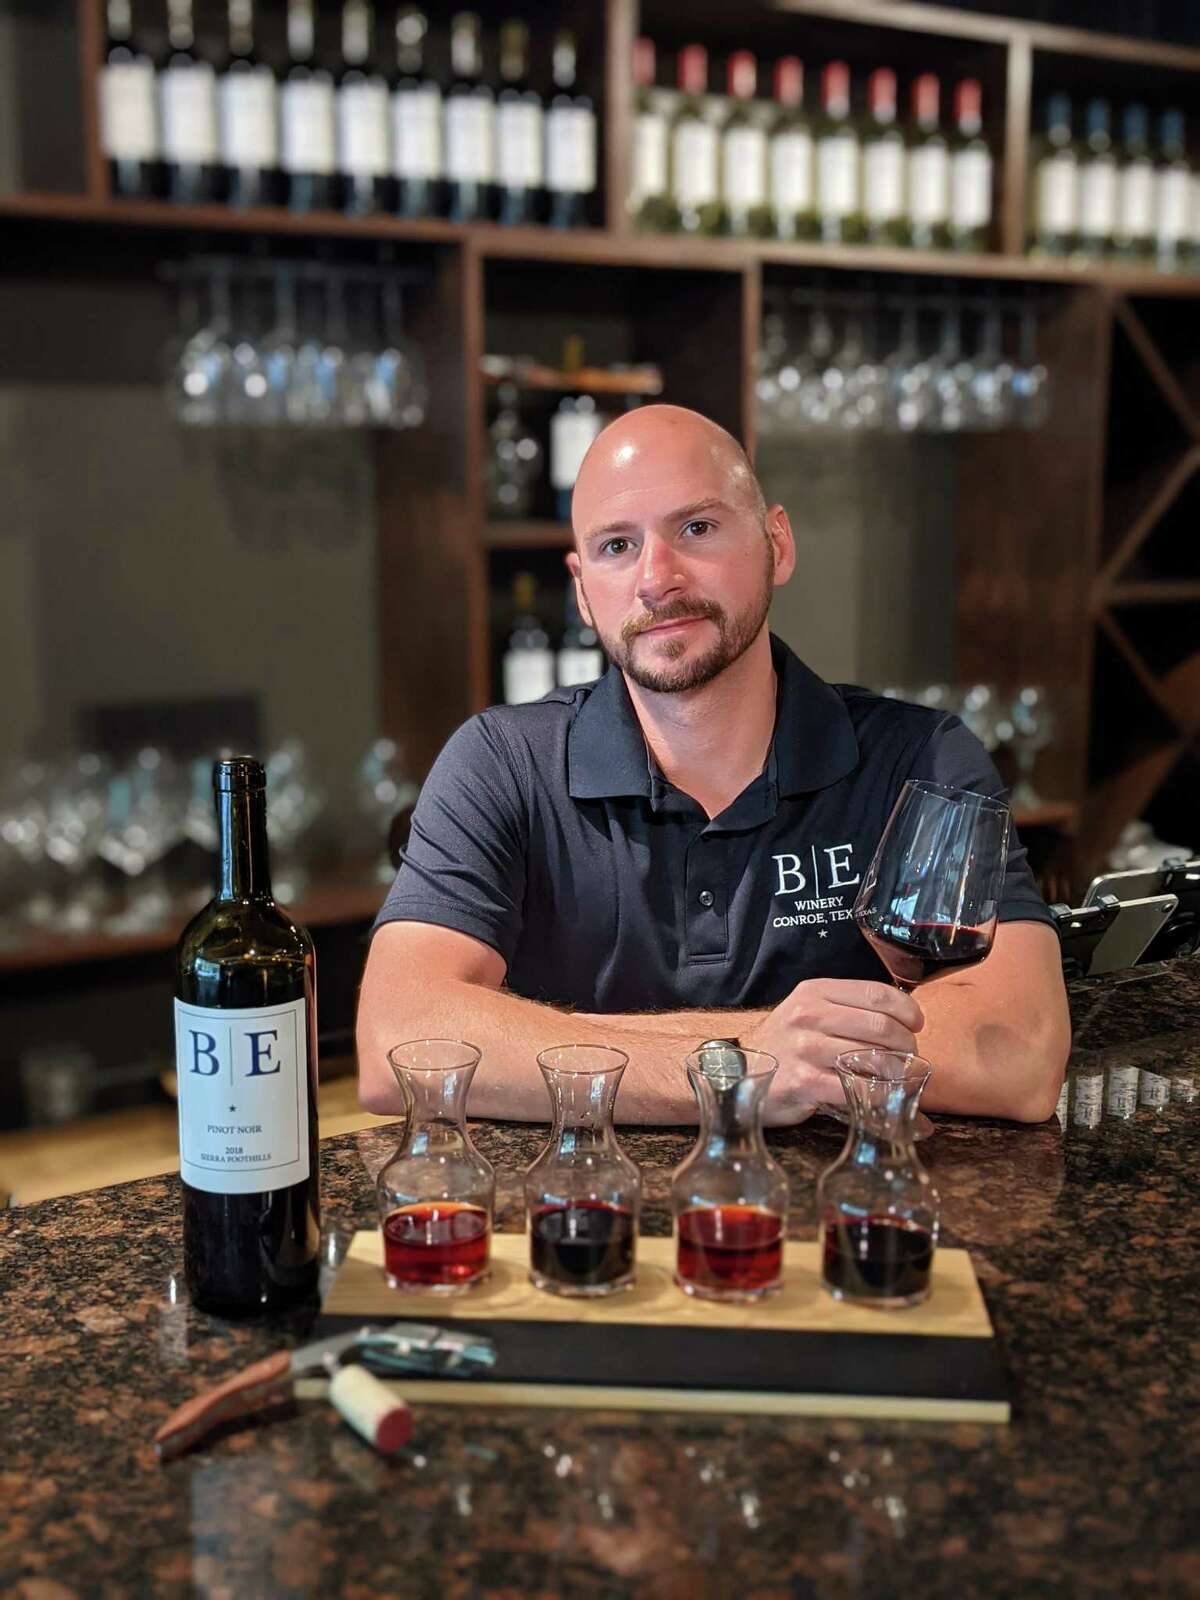 James Barber recently opened the Blue Epiphany Tasting Room in downtown Conroe at 336 N. Main, Ste 103, across from the Montgomery County Courthouse.